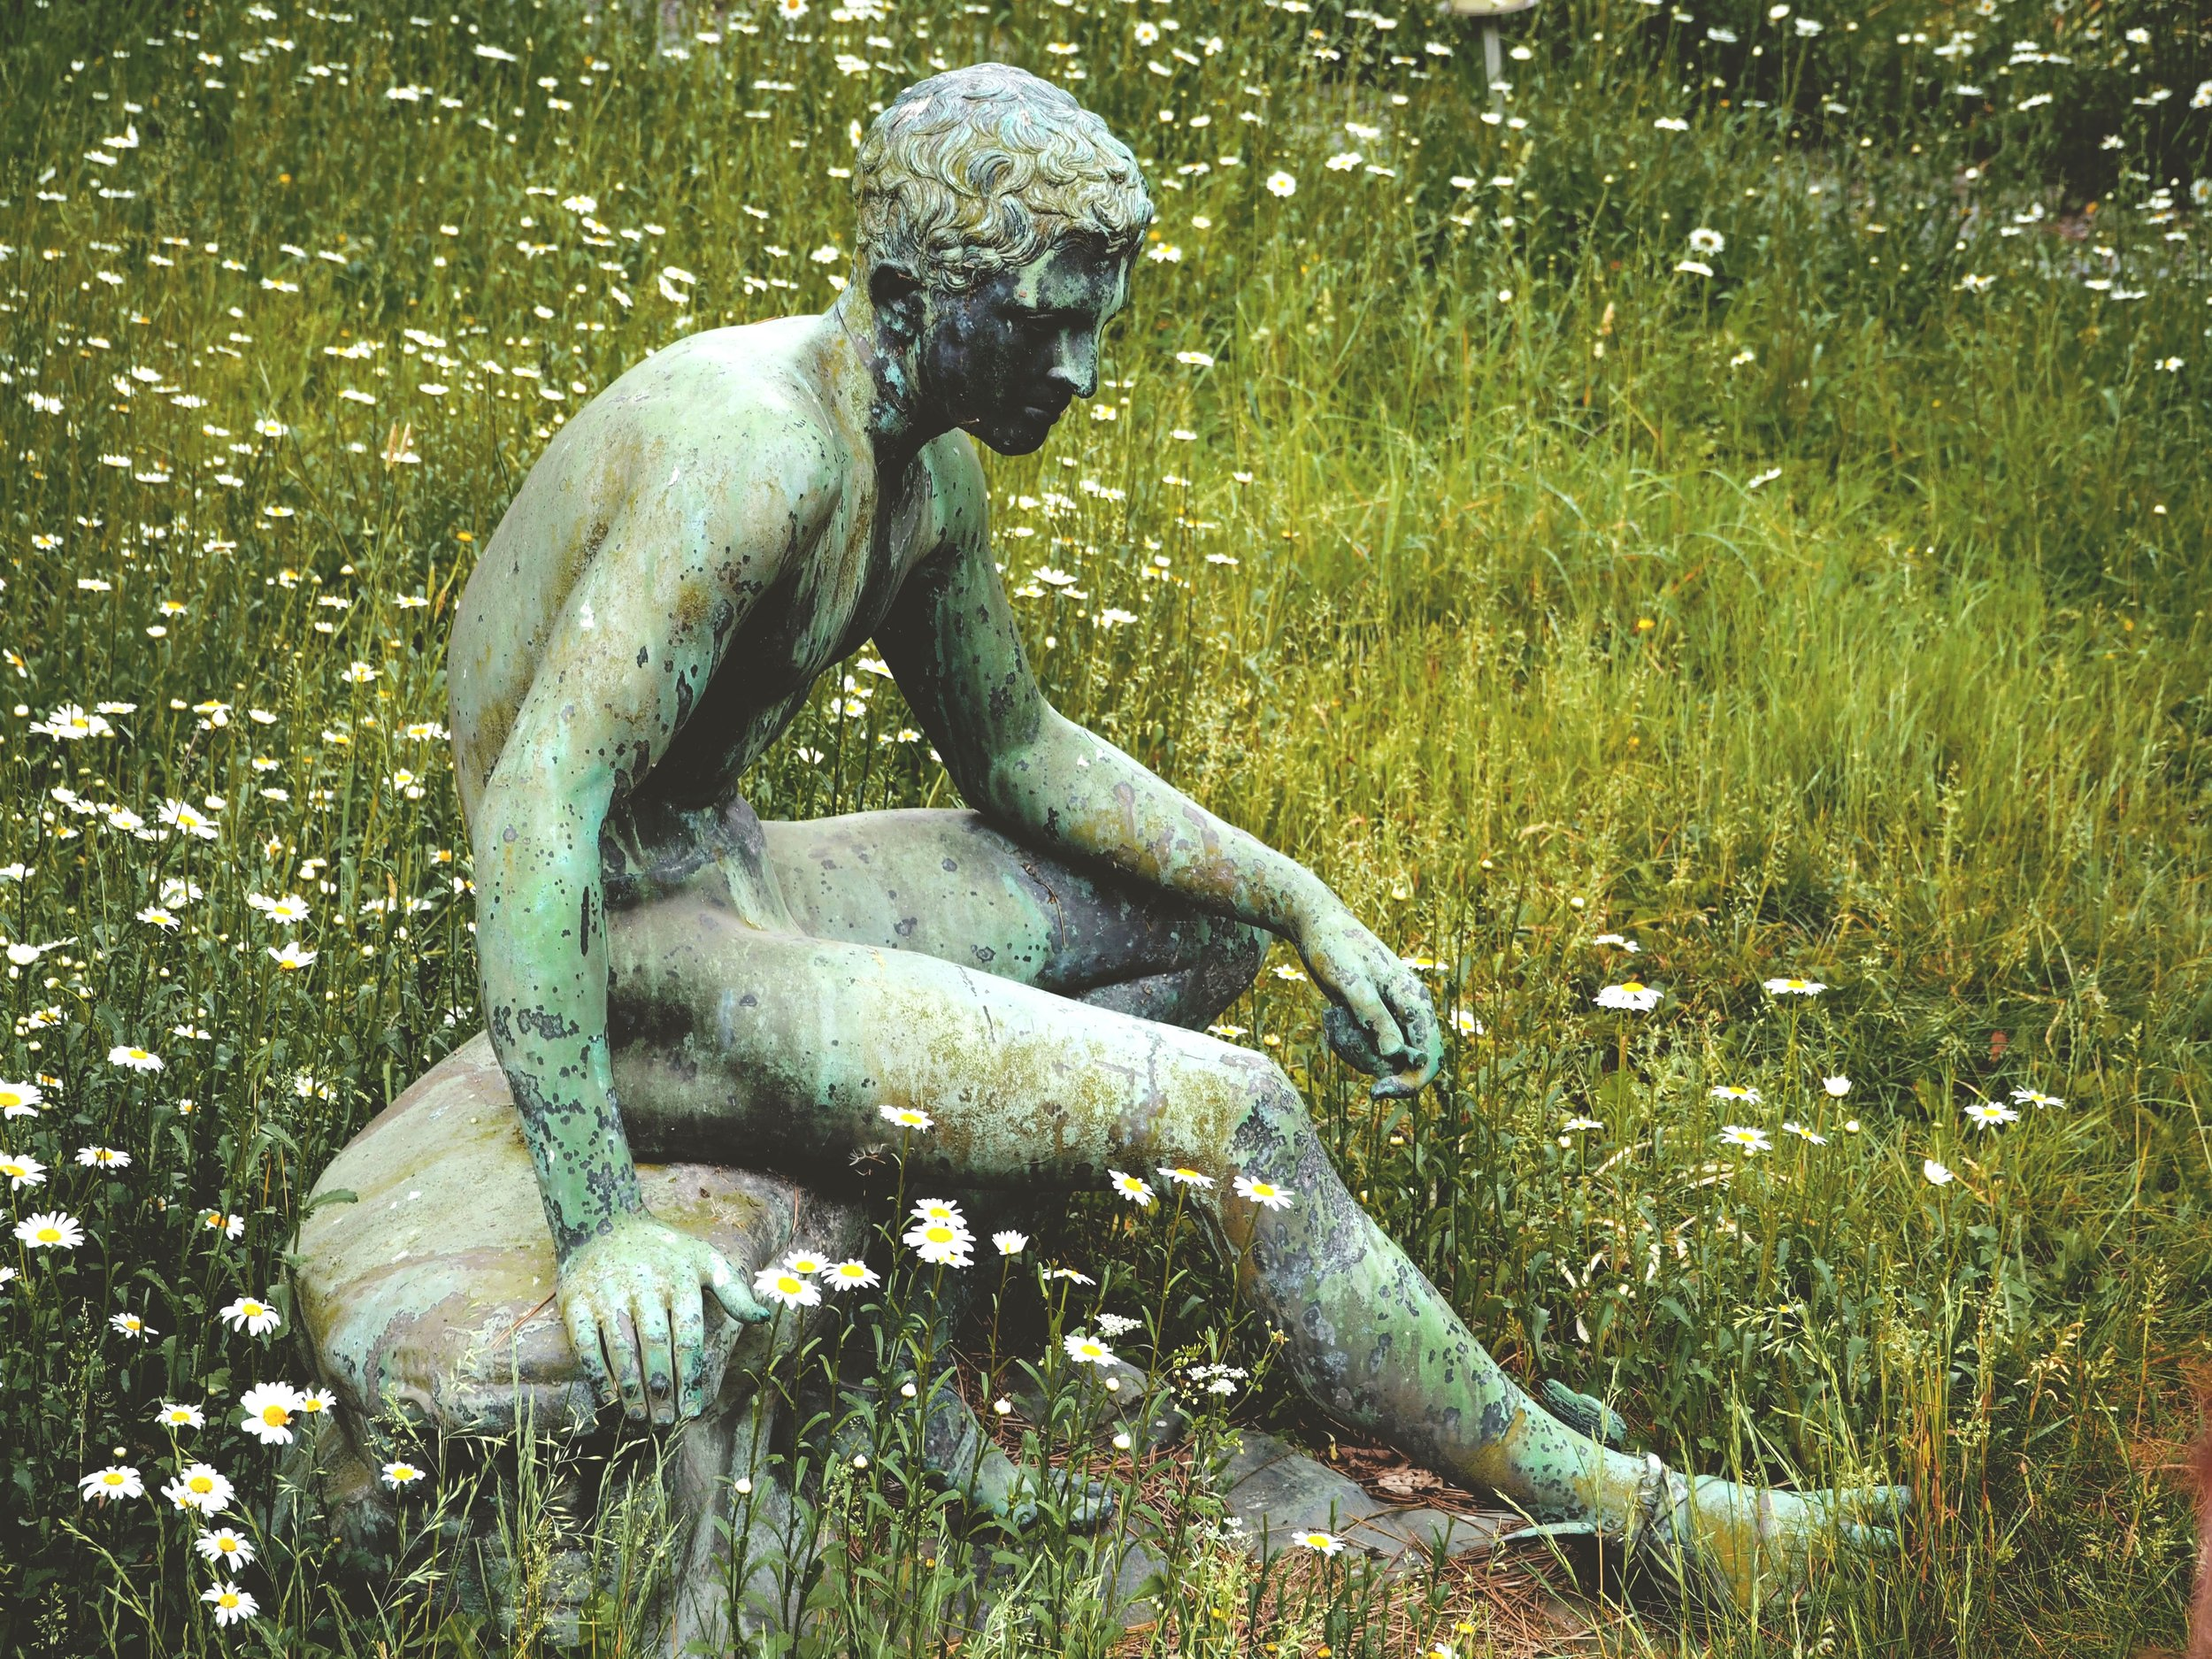 Probably a statue of a guy thinking about Trappist brews.